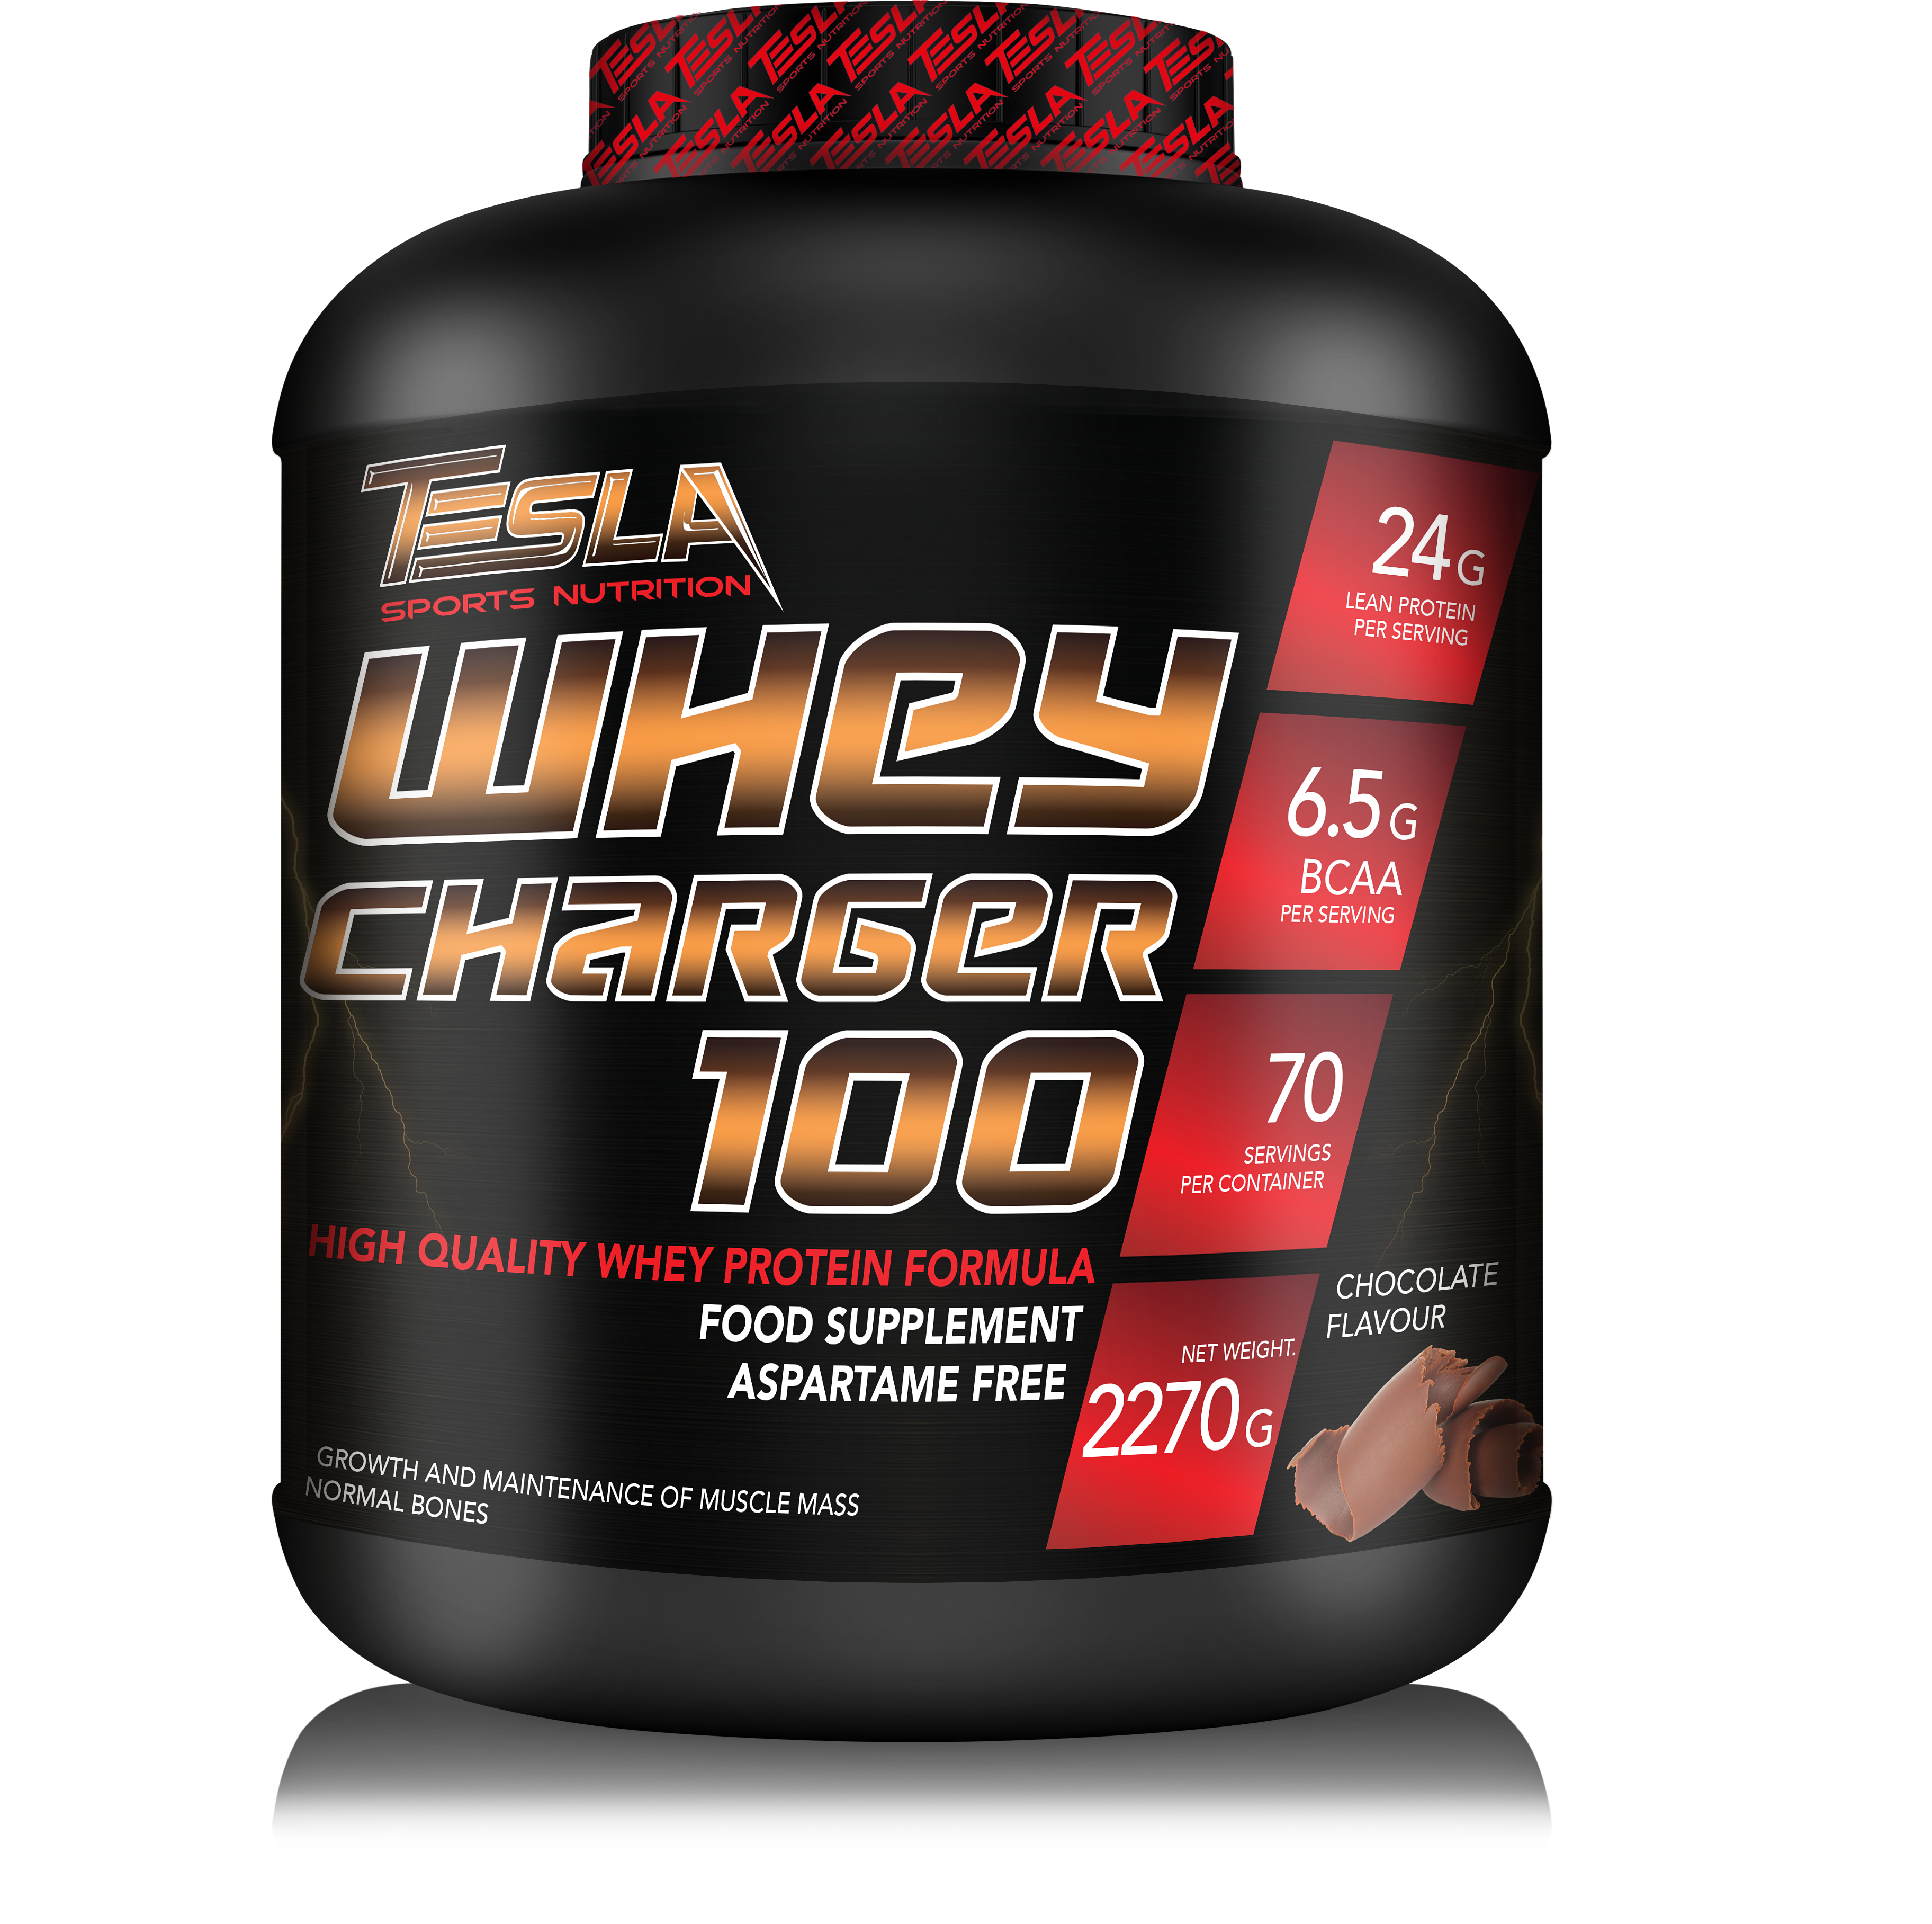 Tesla WHEY CHARGER 100 2,27 kg